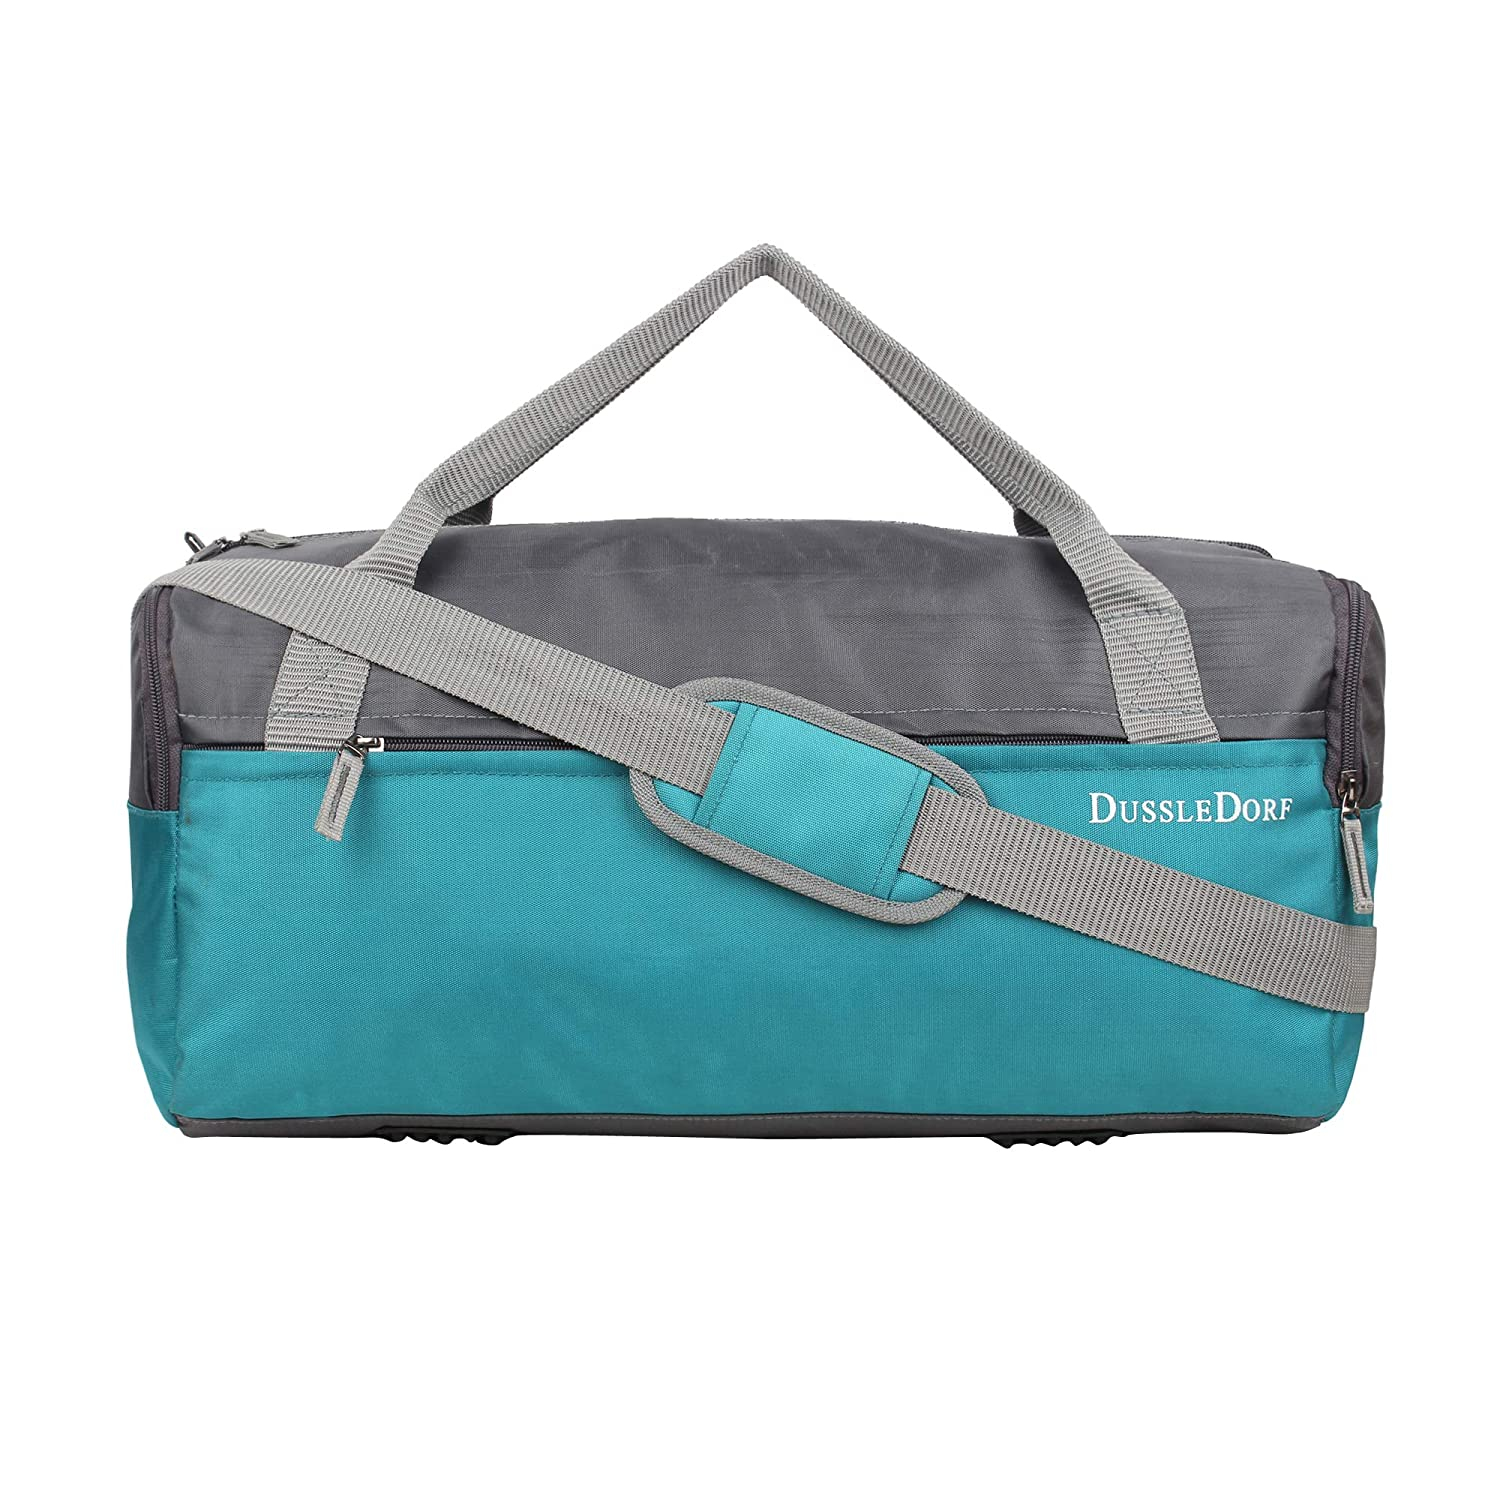 Dussle Dorf Polyester 35 Liters Grey and Turquoise Travel Duffle Bag